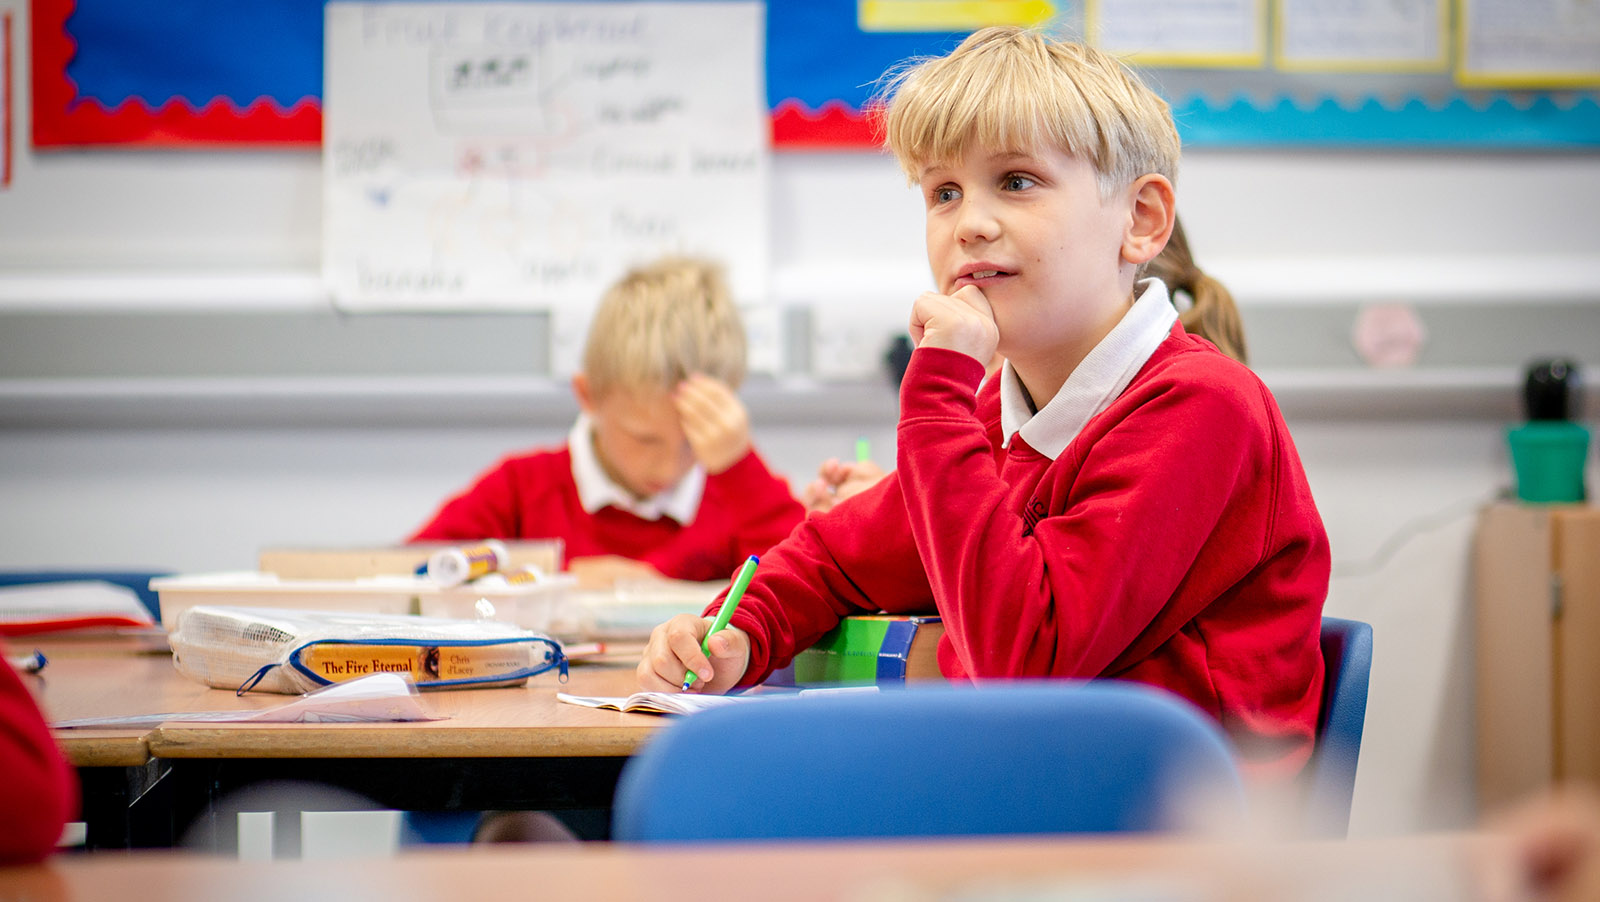 Boy at desk in school classroom holding pen looking at teacher